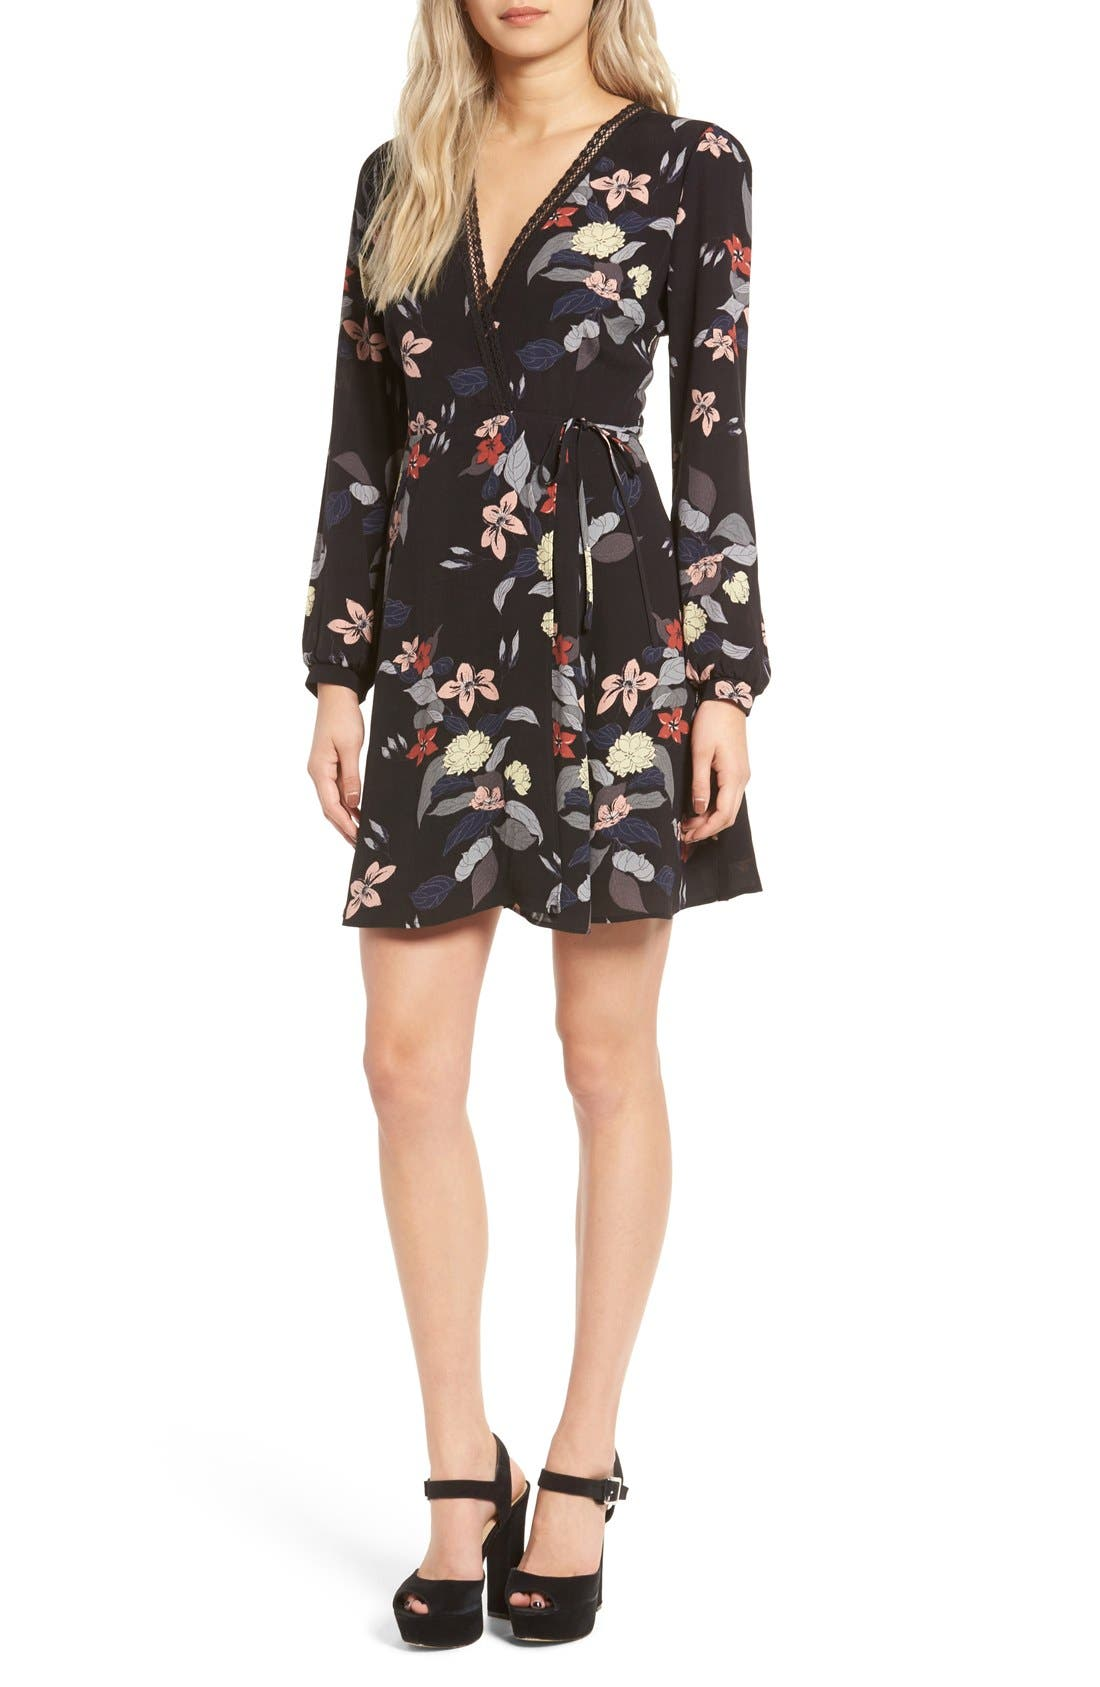 Main Image - ASTR Floral Print Wrap Dress